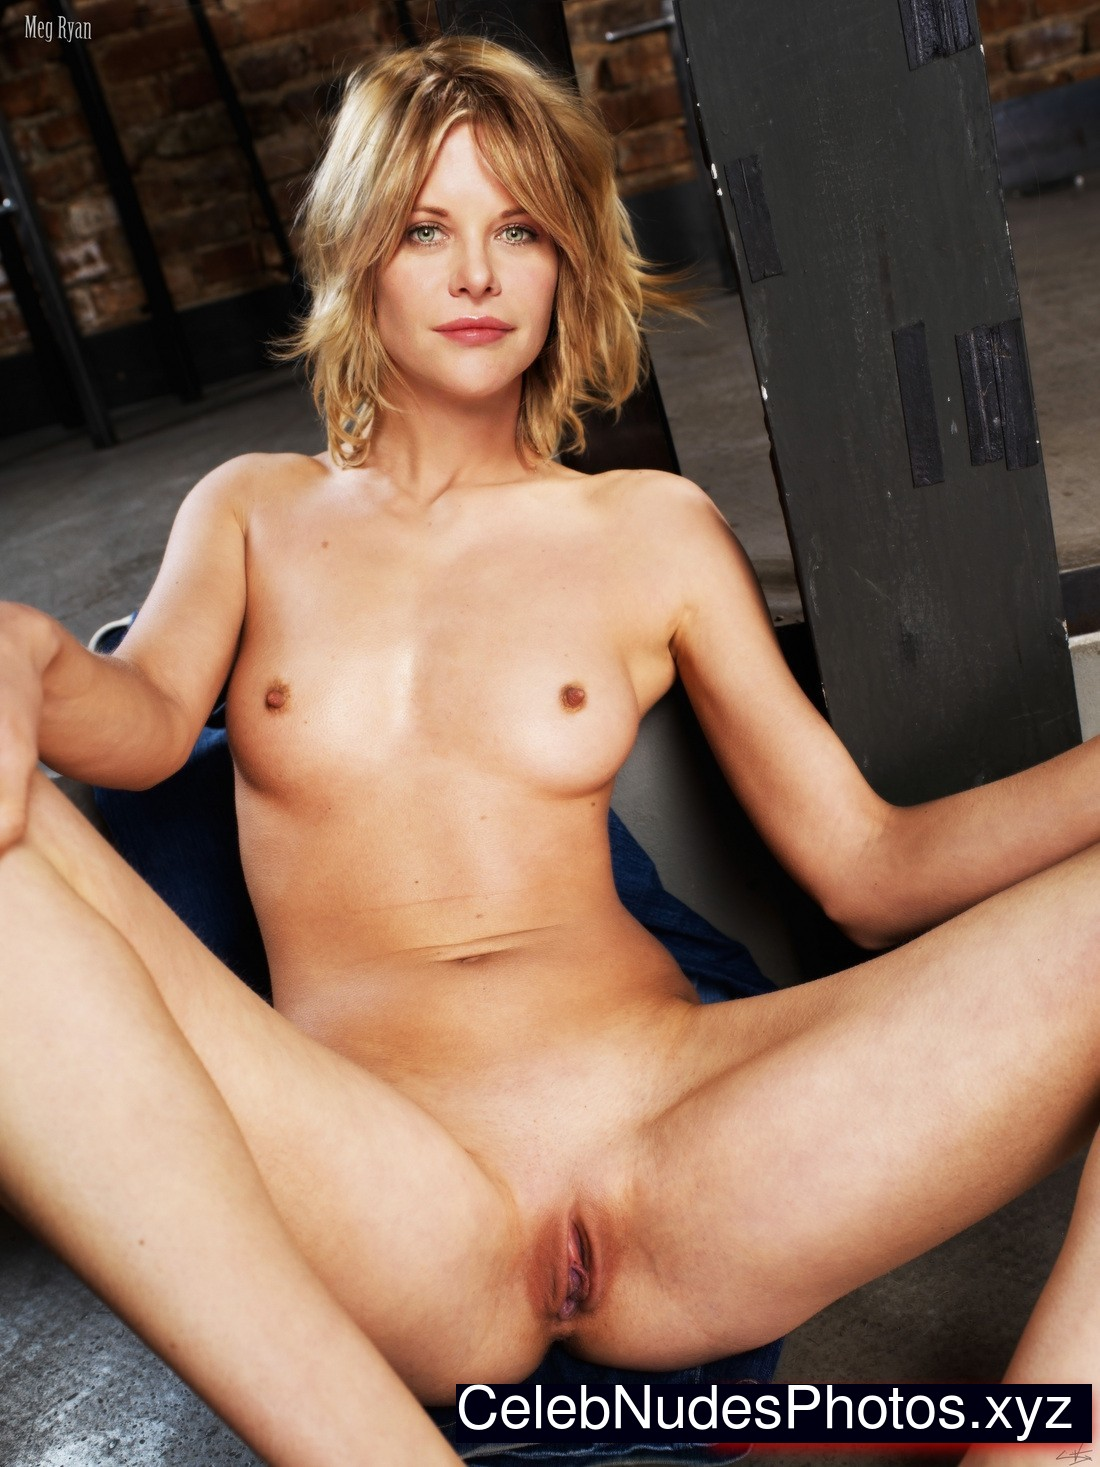 Hot nude 40 something sandy